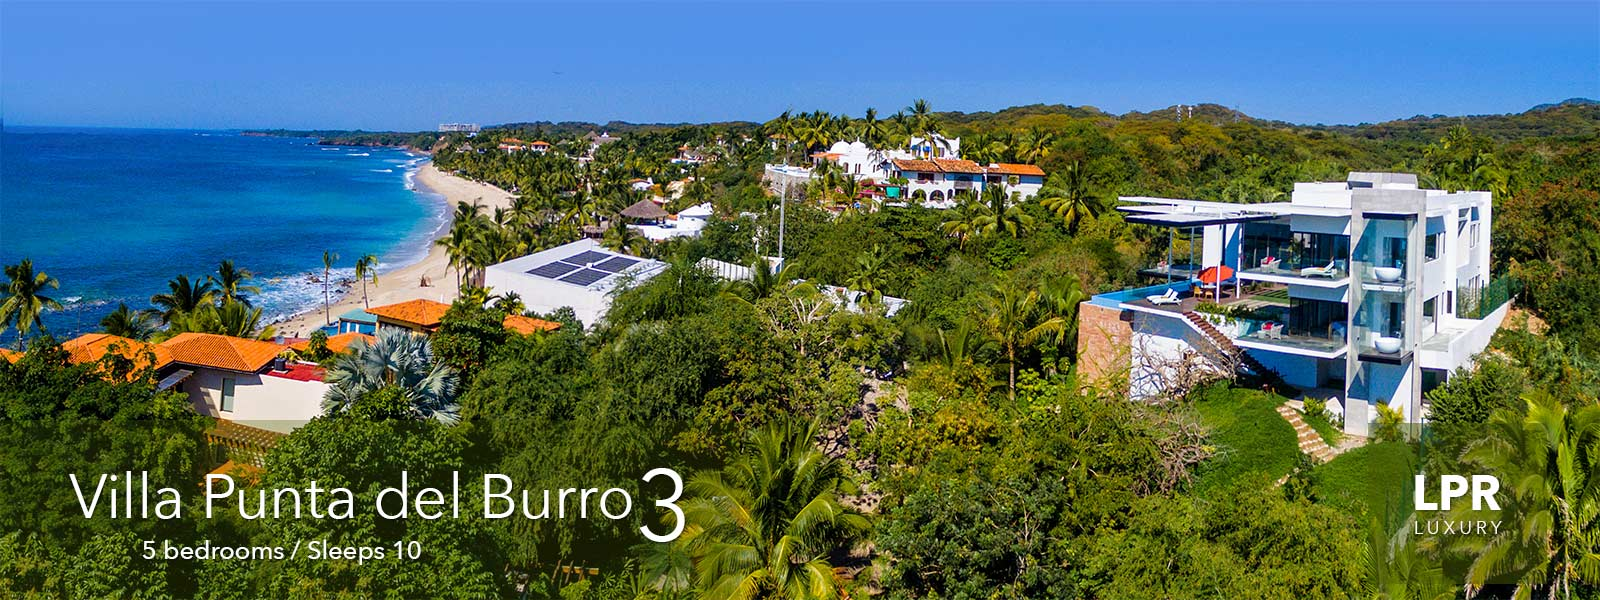 Villa Punta del Burro 3 - Luxury Punta de Mita Real Estate and Vacation Rentals - Riviera Nayarit, Mexico